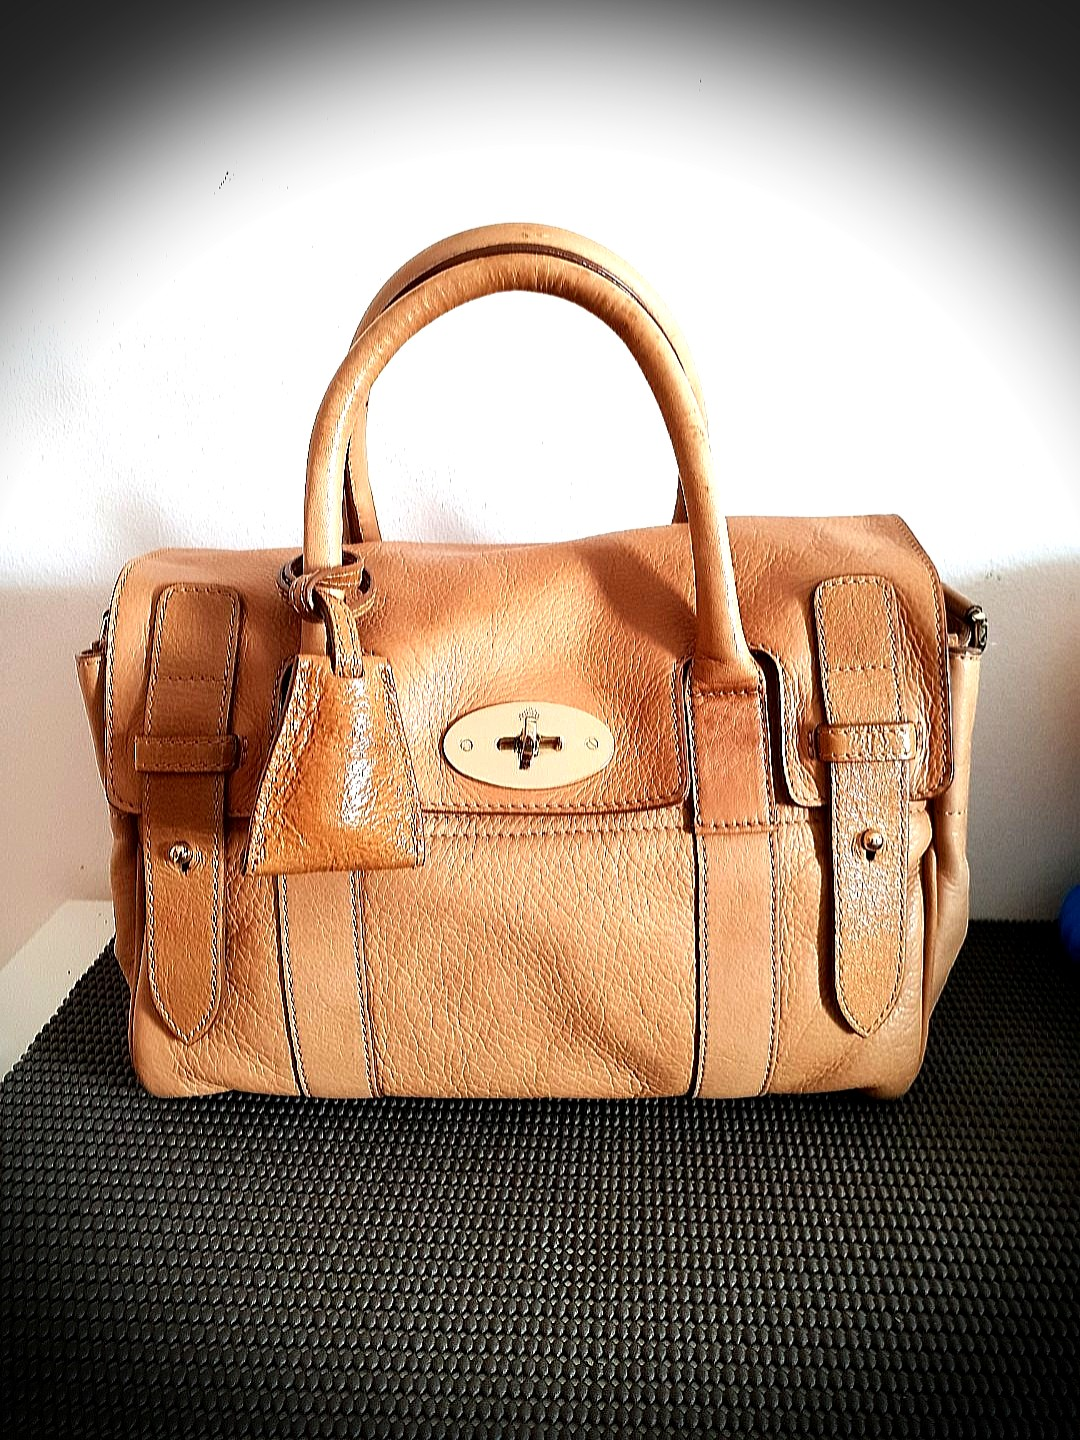 ce13b57b8776 Authentic Mulberry Bayswater bag